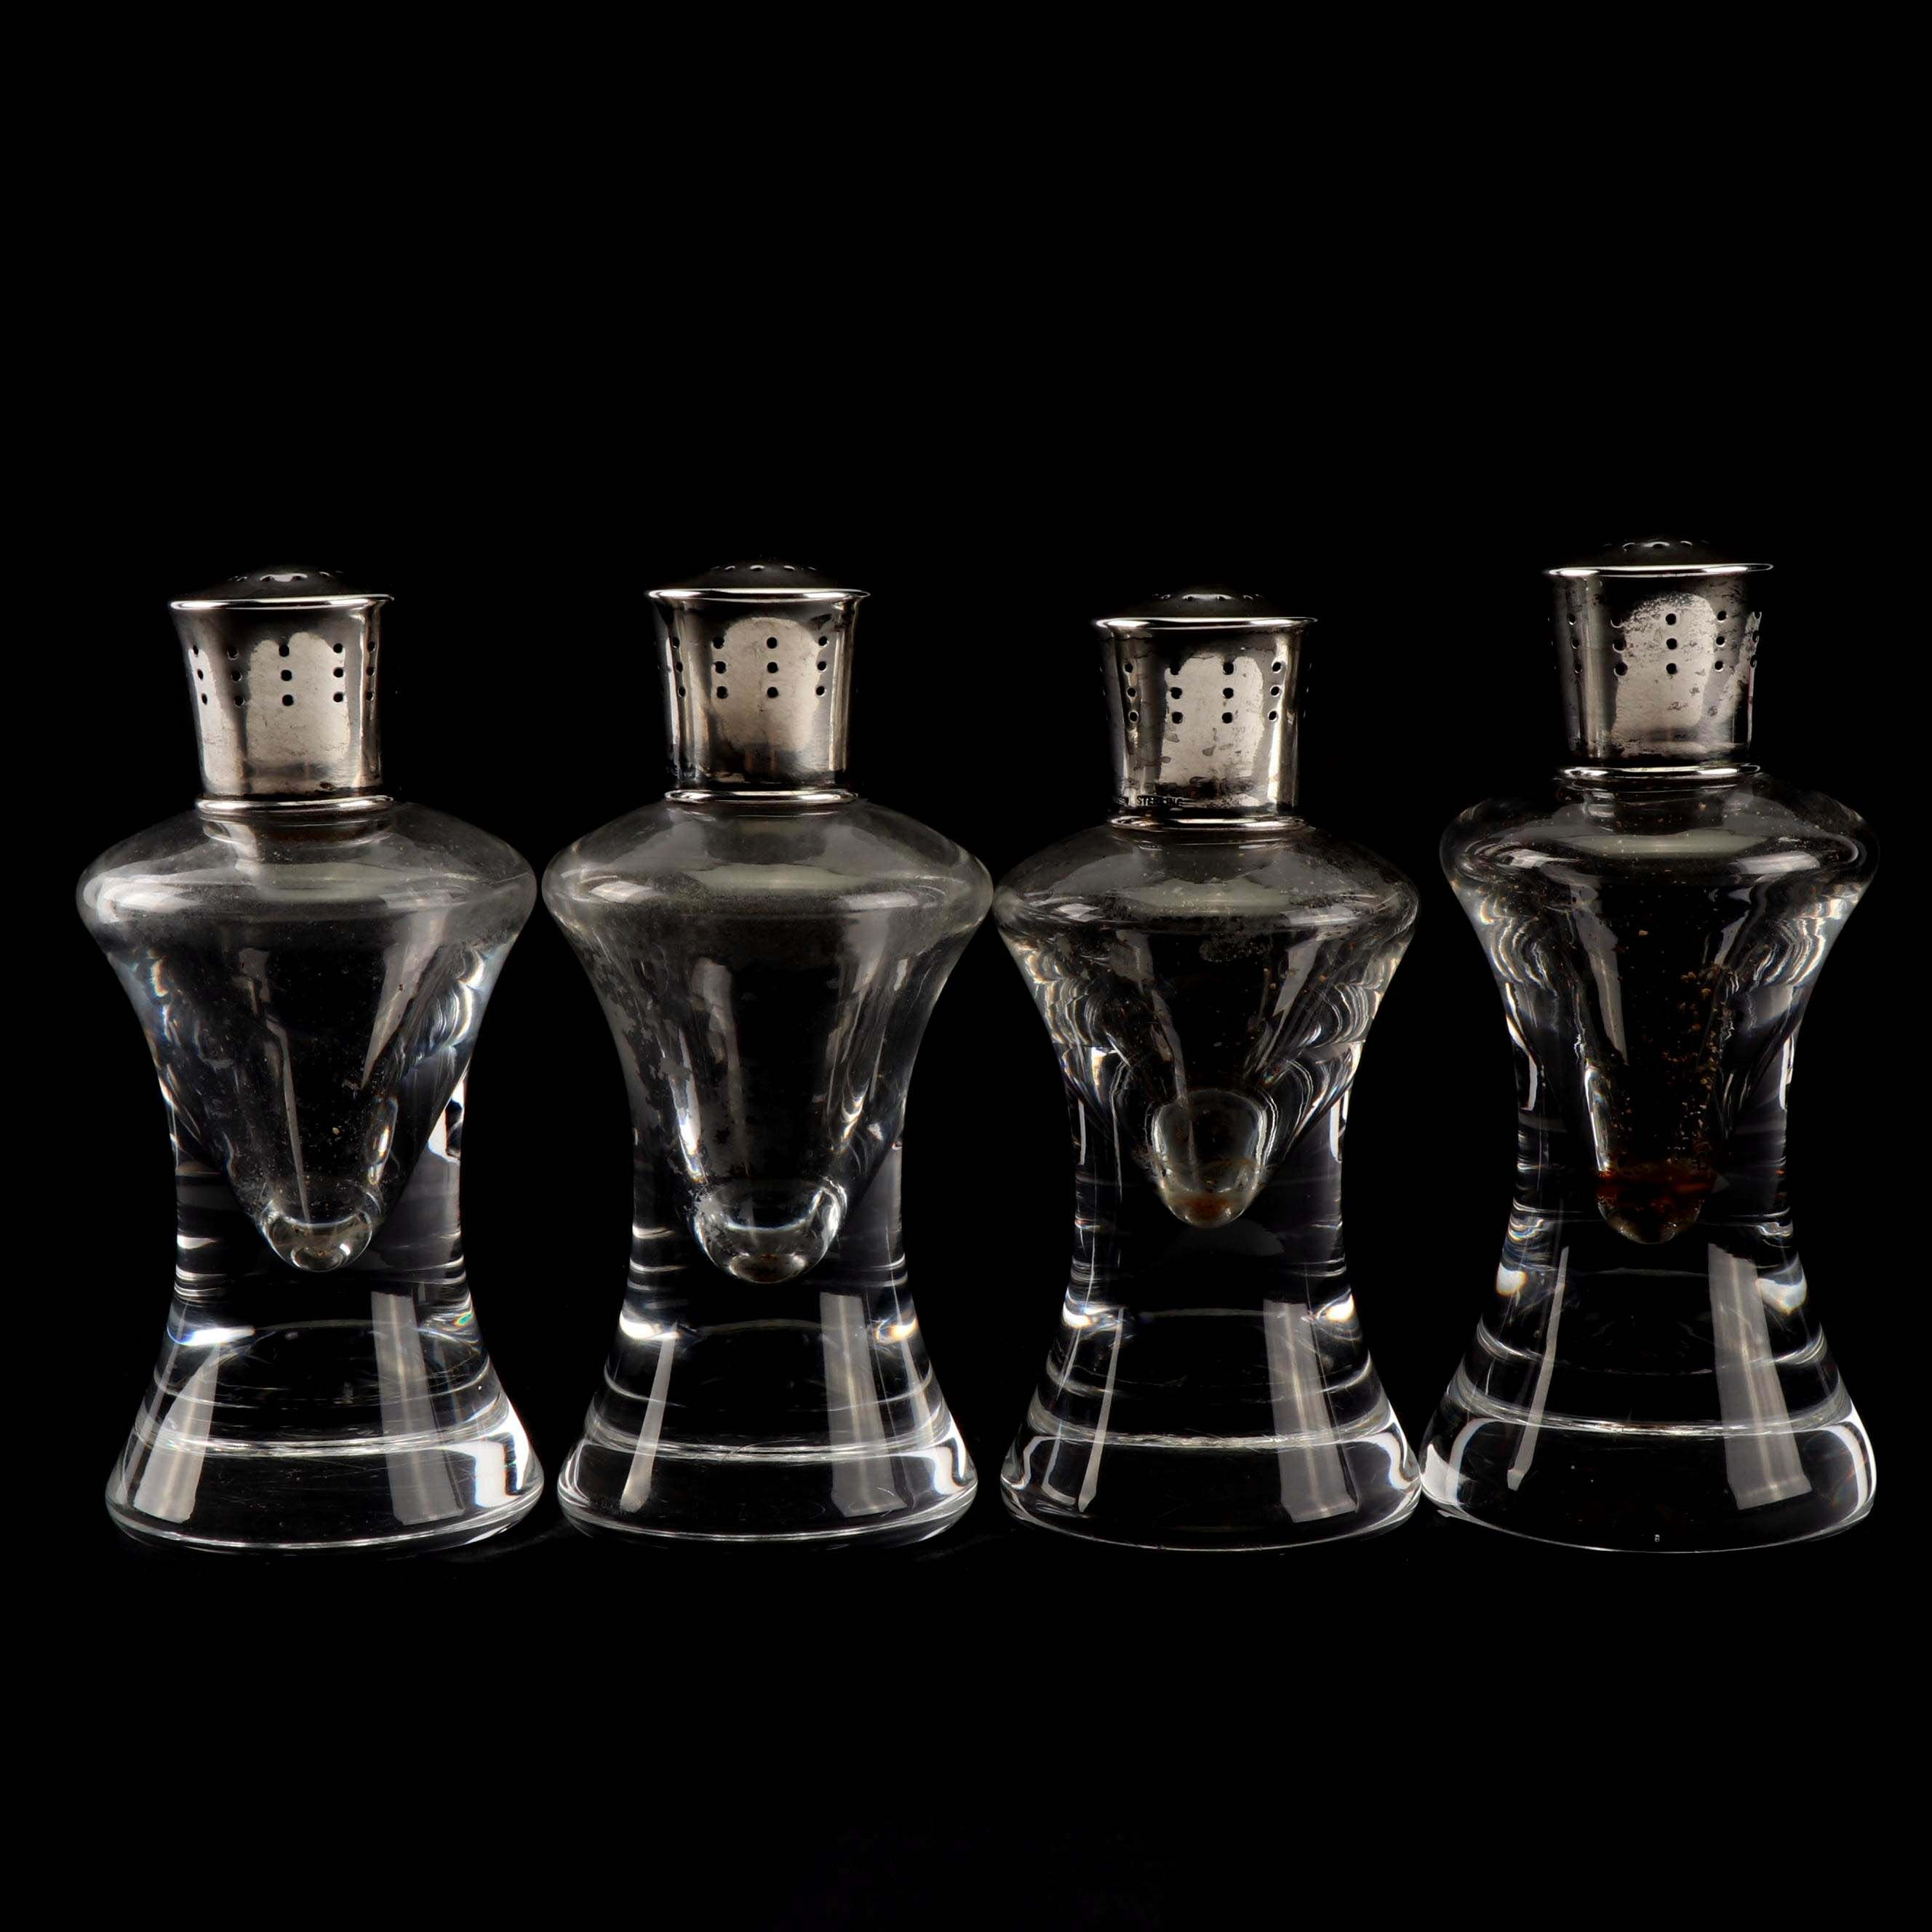 Four Steuben Glass and Silver Salt and Pepper Casters